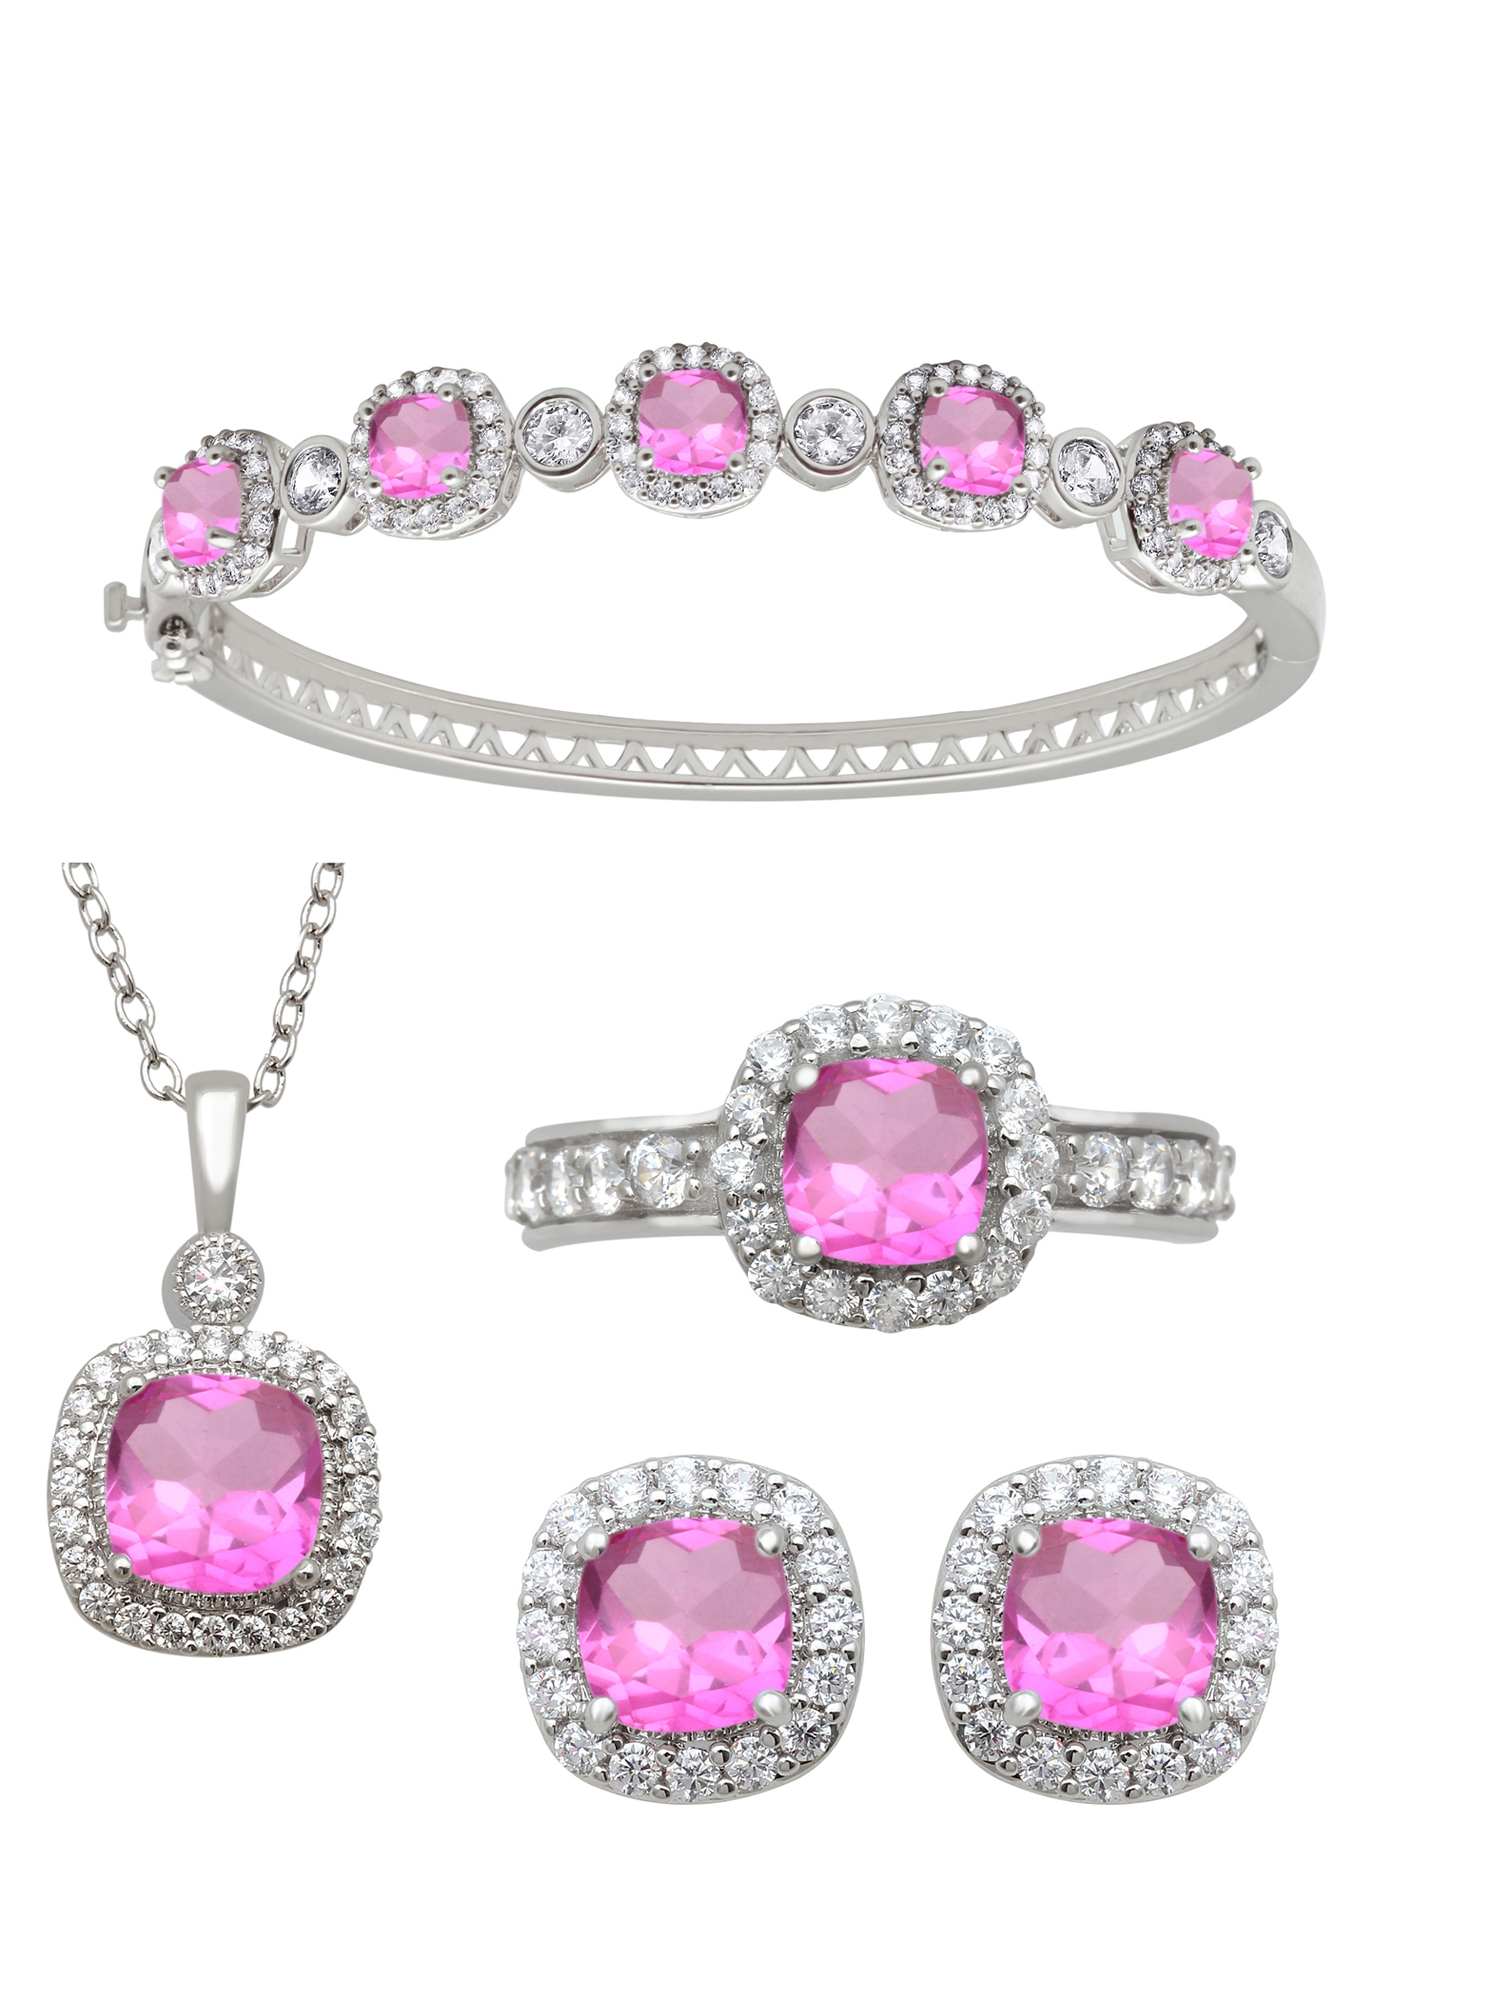 Cushion Cut Simulated Pink Sapphire and Round Clear CZ Ring, Pendant, Earrings and Bracelet Set in Brass